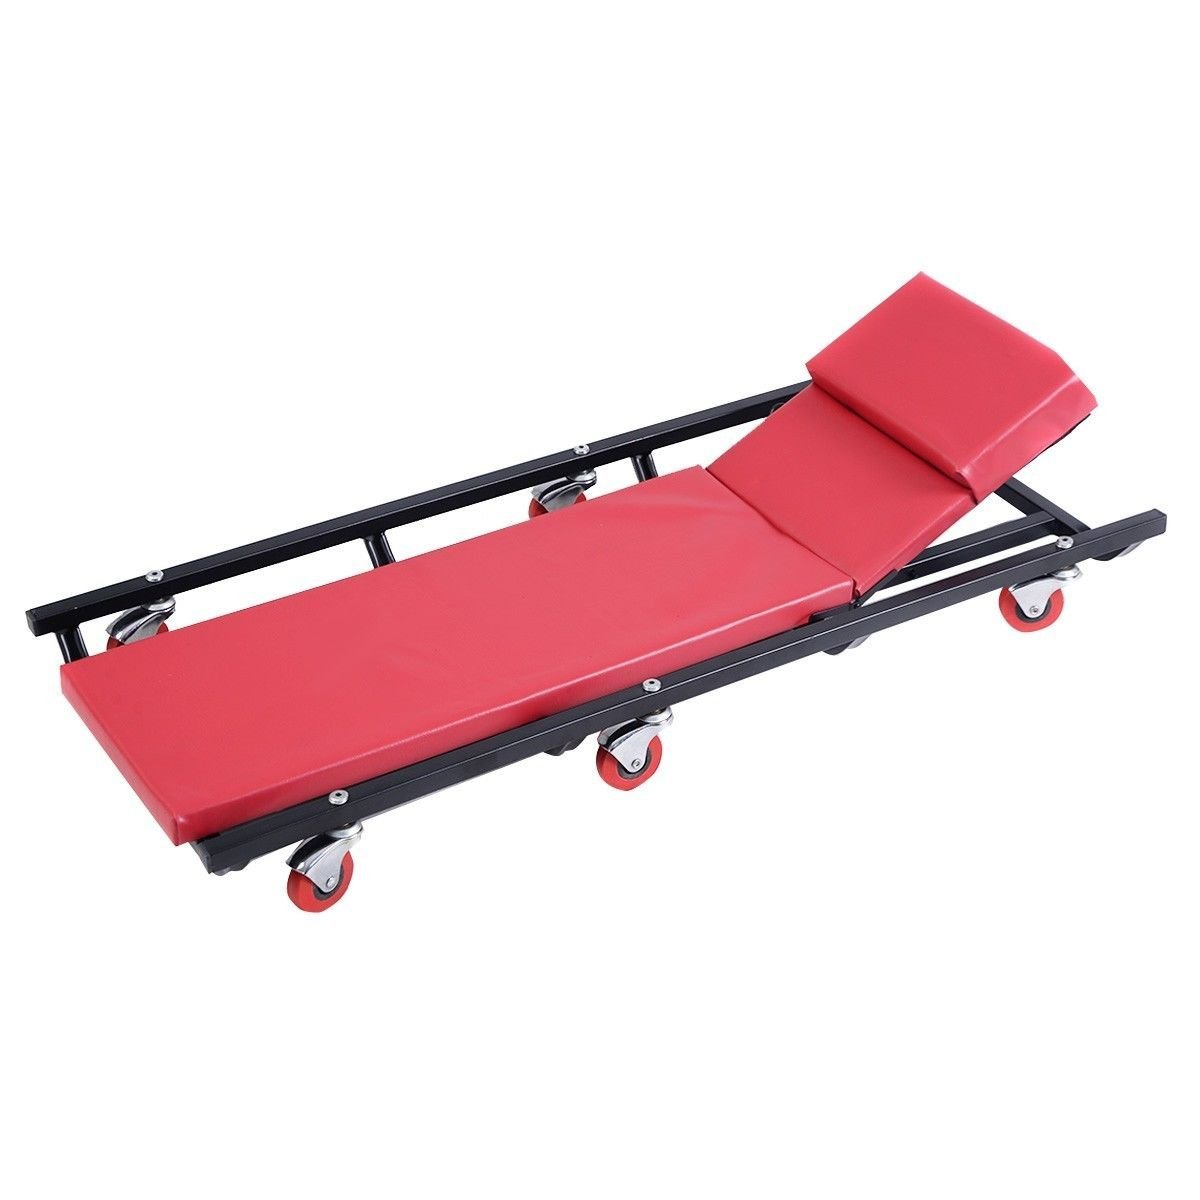 Mechanics Creeper Rolling Shop Garage Auto Car Repair Work Tool Wheels Cart, Color: Black Frame And Red Pad By BRAND NEW